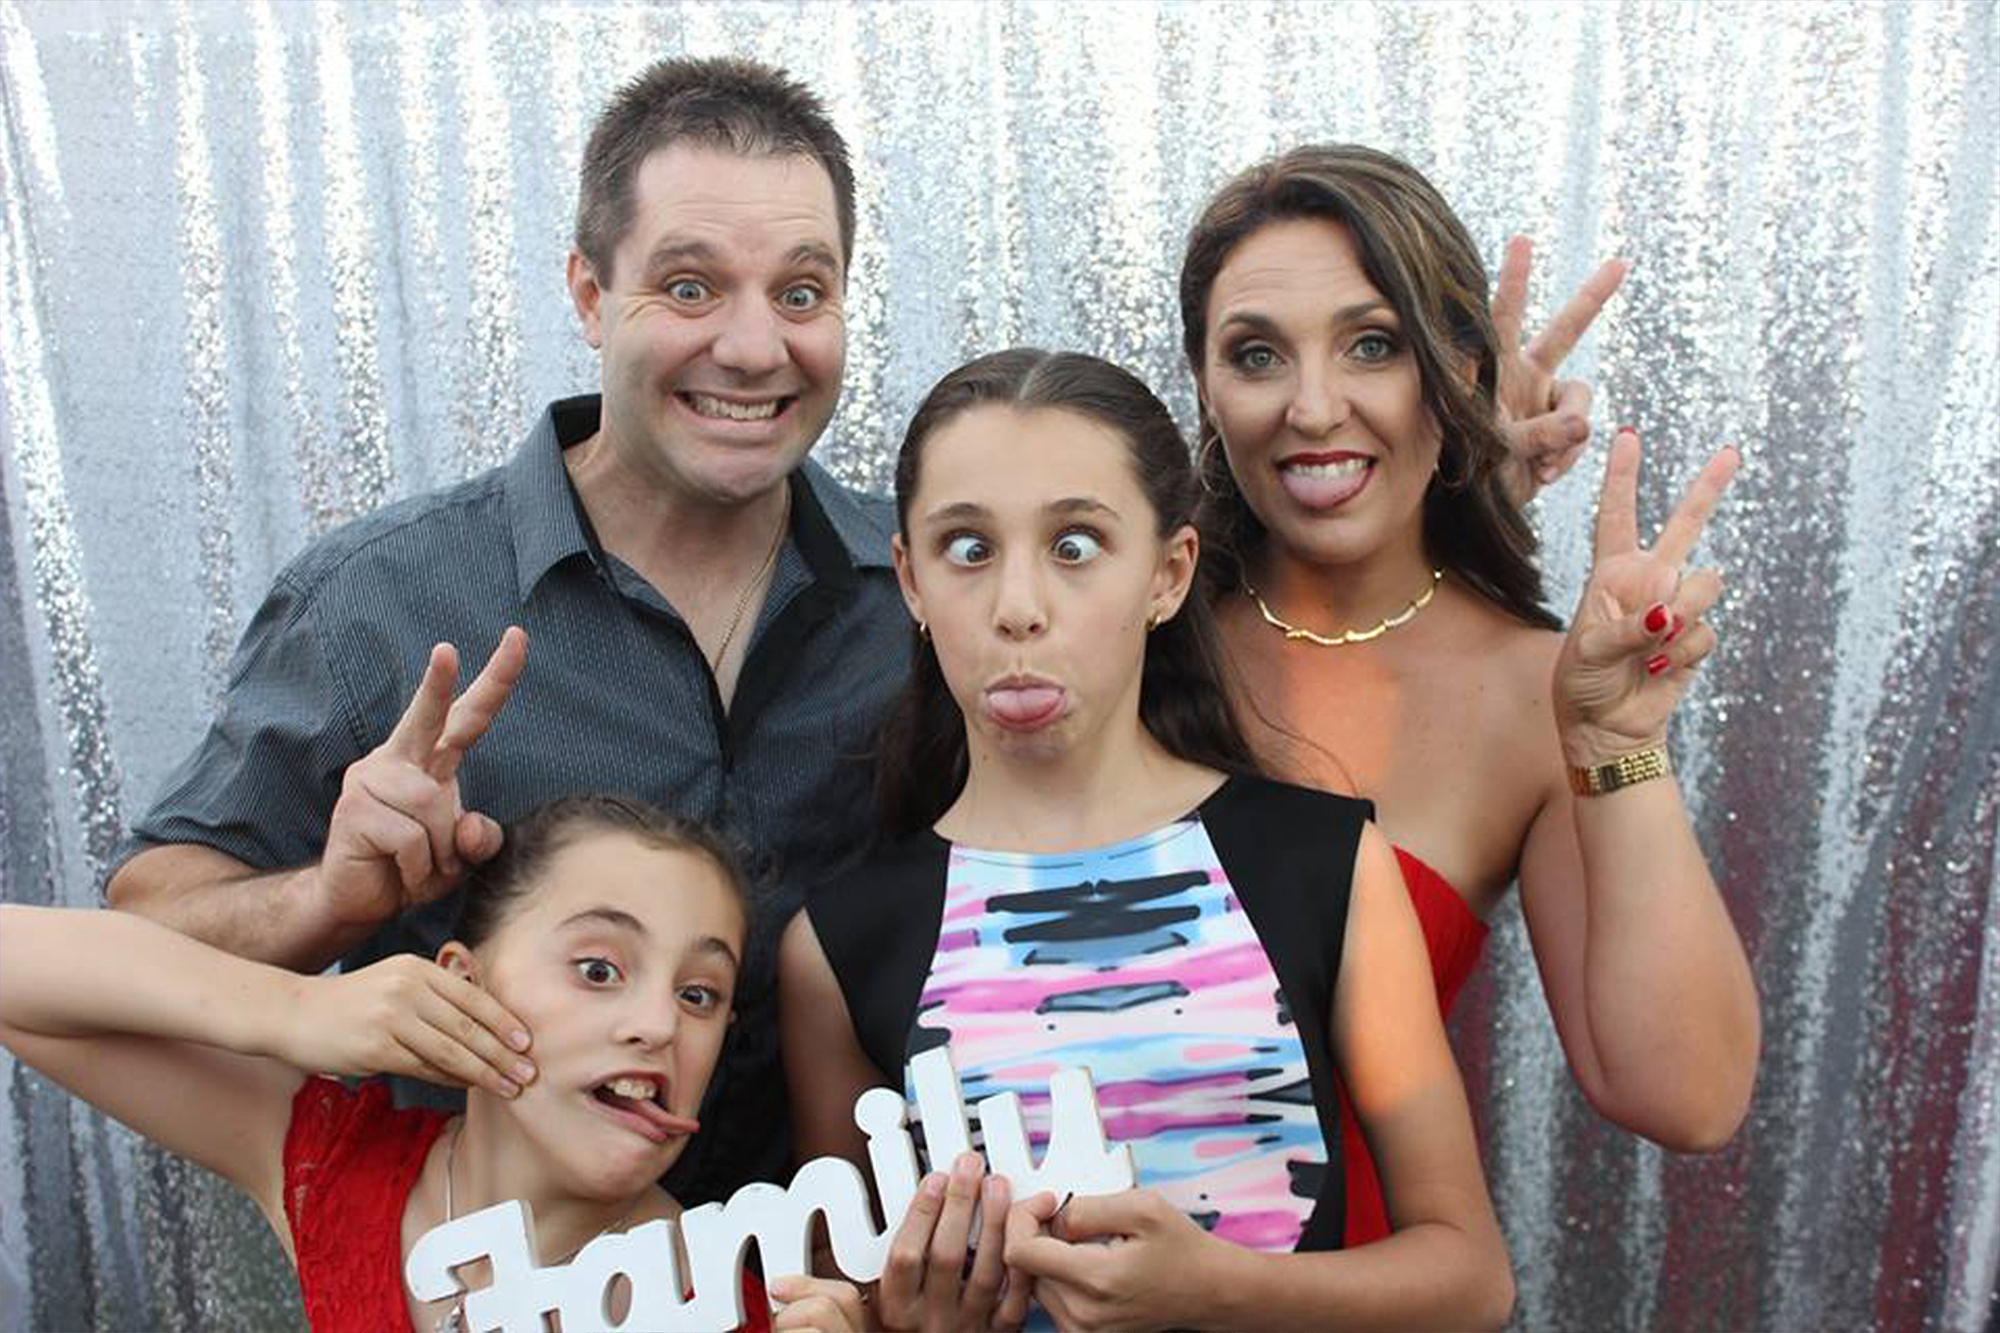 Photo Booth Fun at 40th Birthday Perth